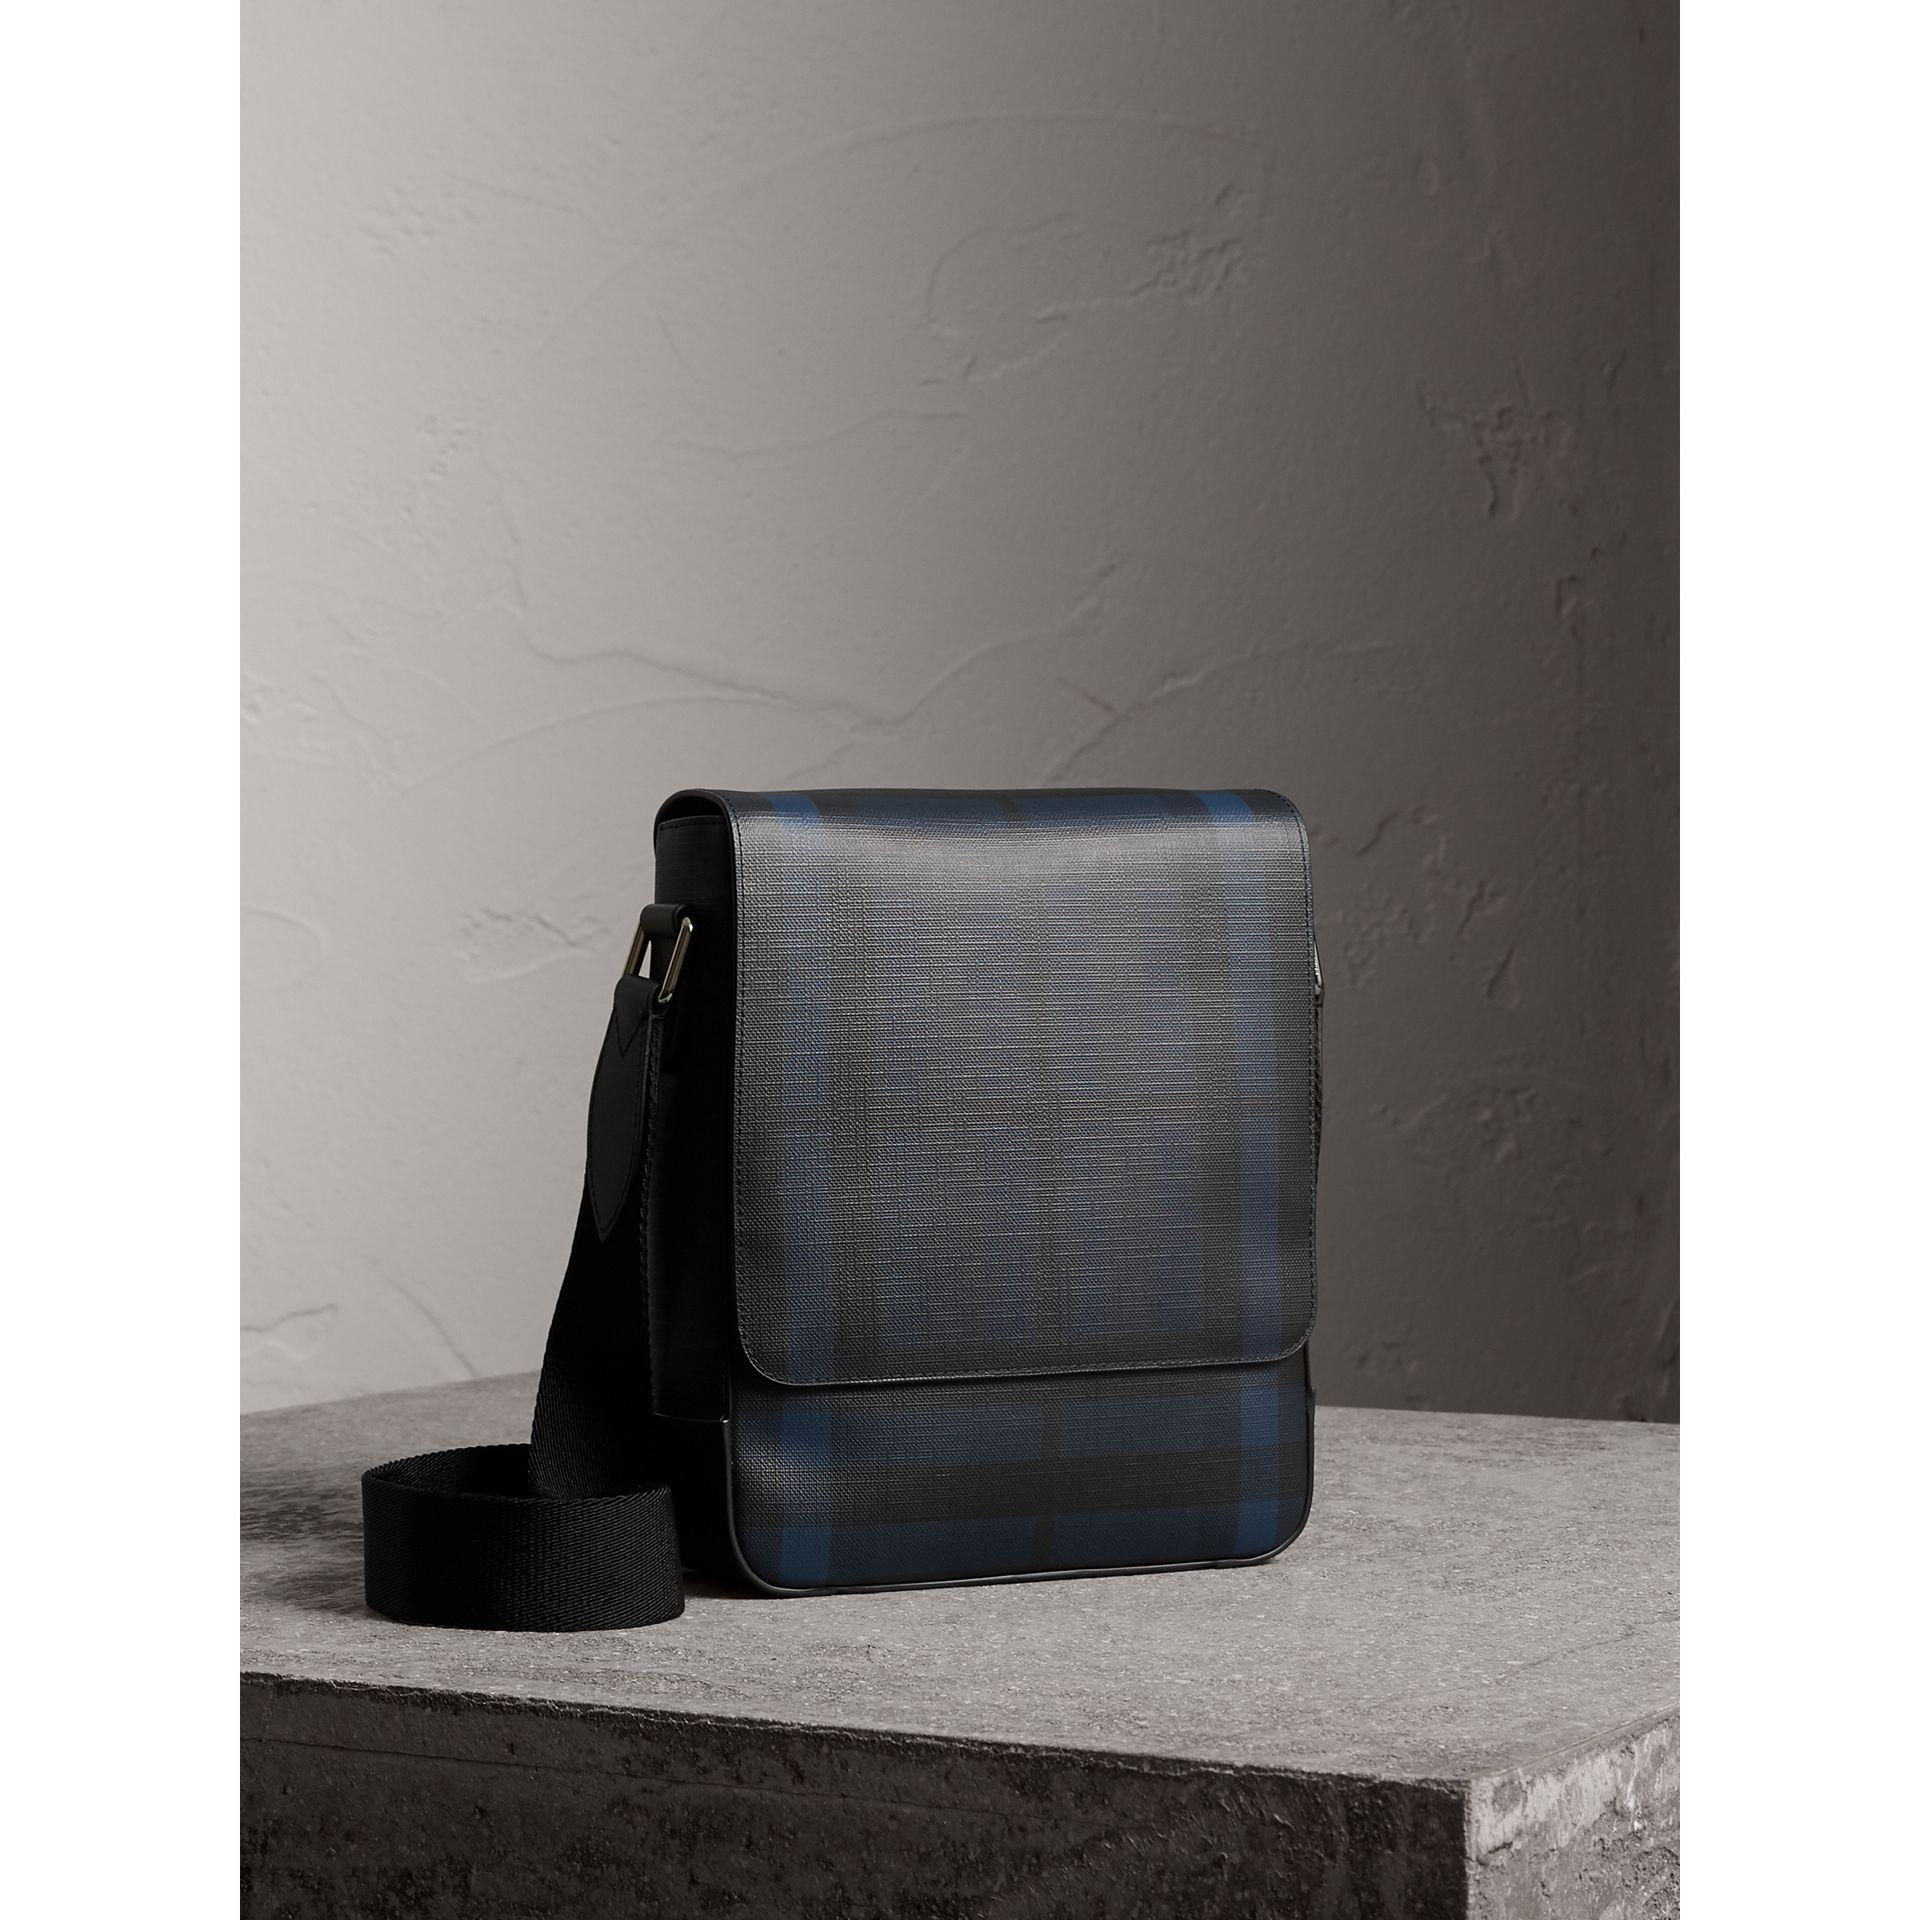 Burberry Canvas London Check Crossbody Bag Navy/black in Blue for Men